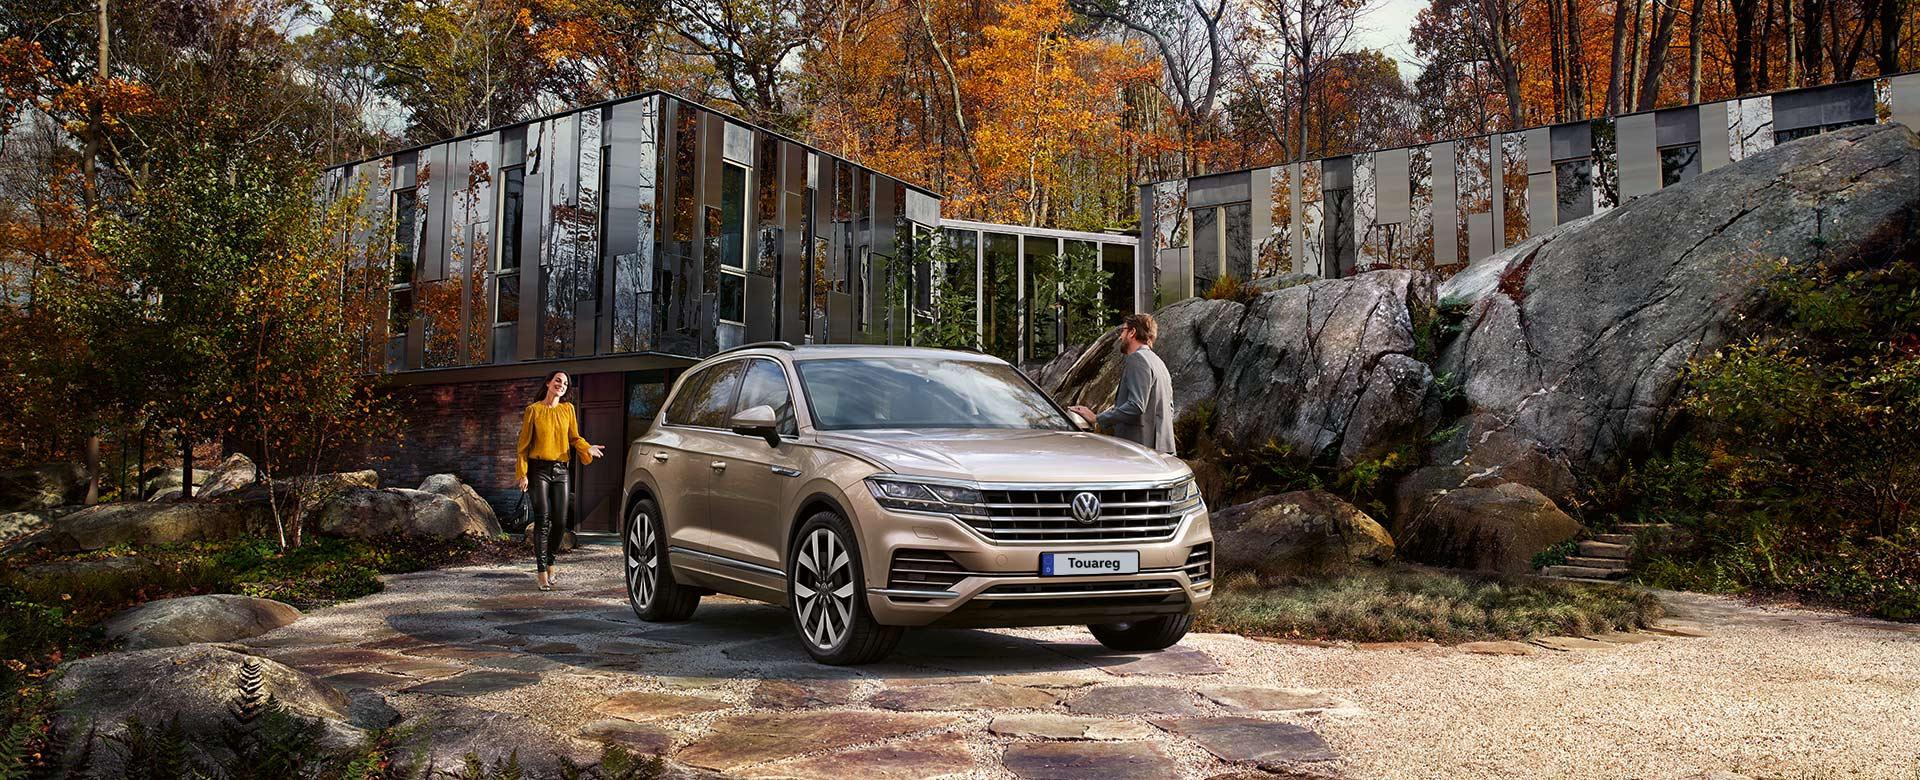 All new Touareg coming soon